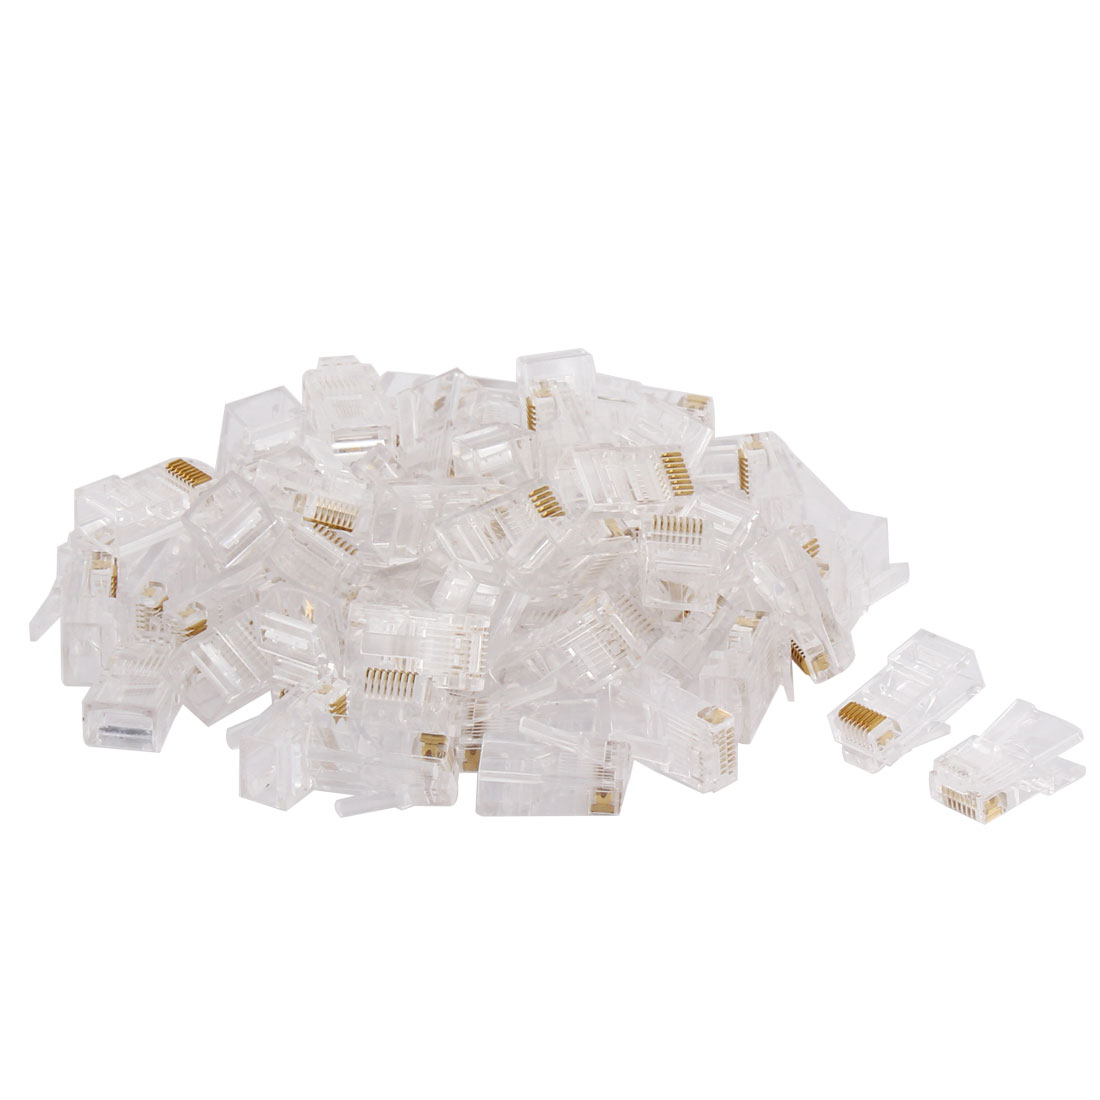 RJ45 CAT5 8P8C Modular Adapter LAN Network Connector Clear 60 PCS